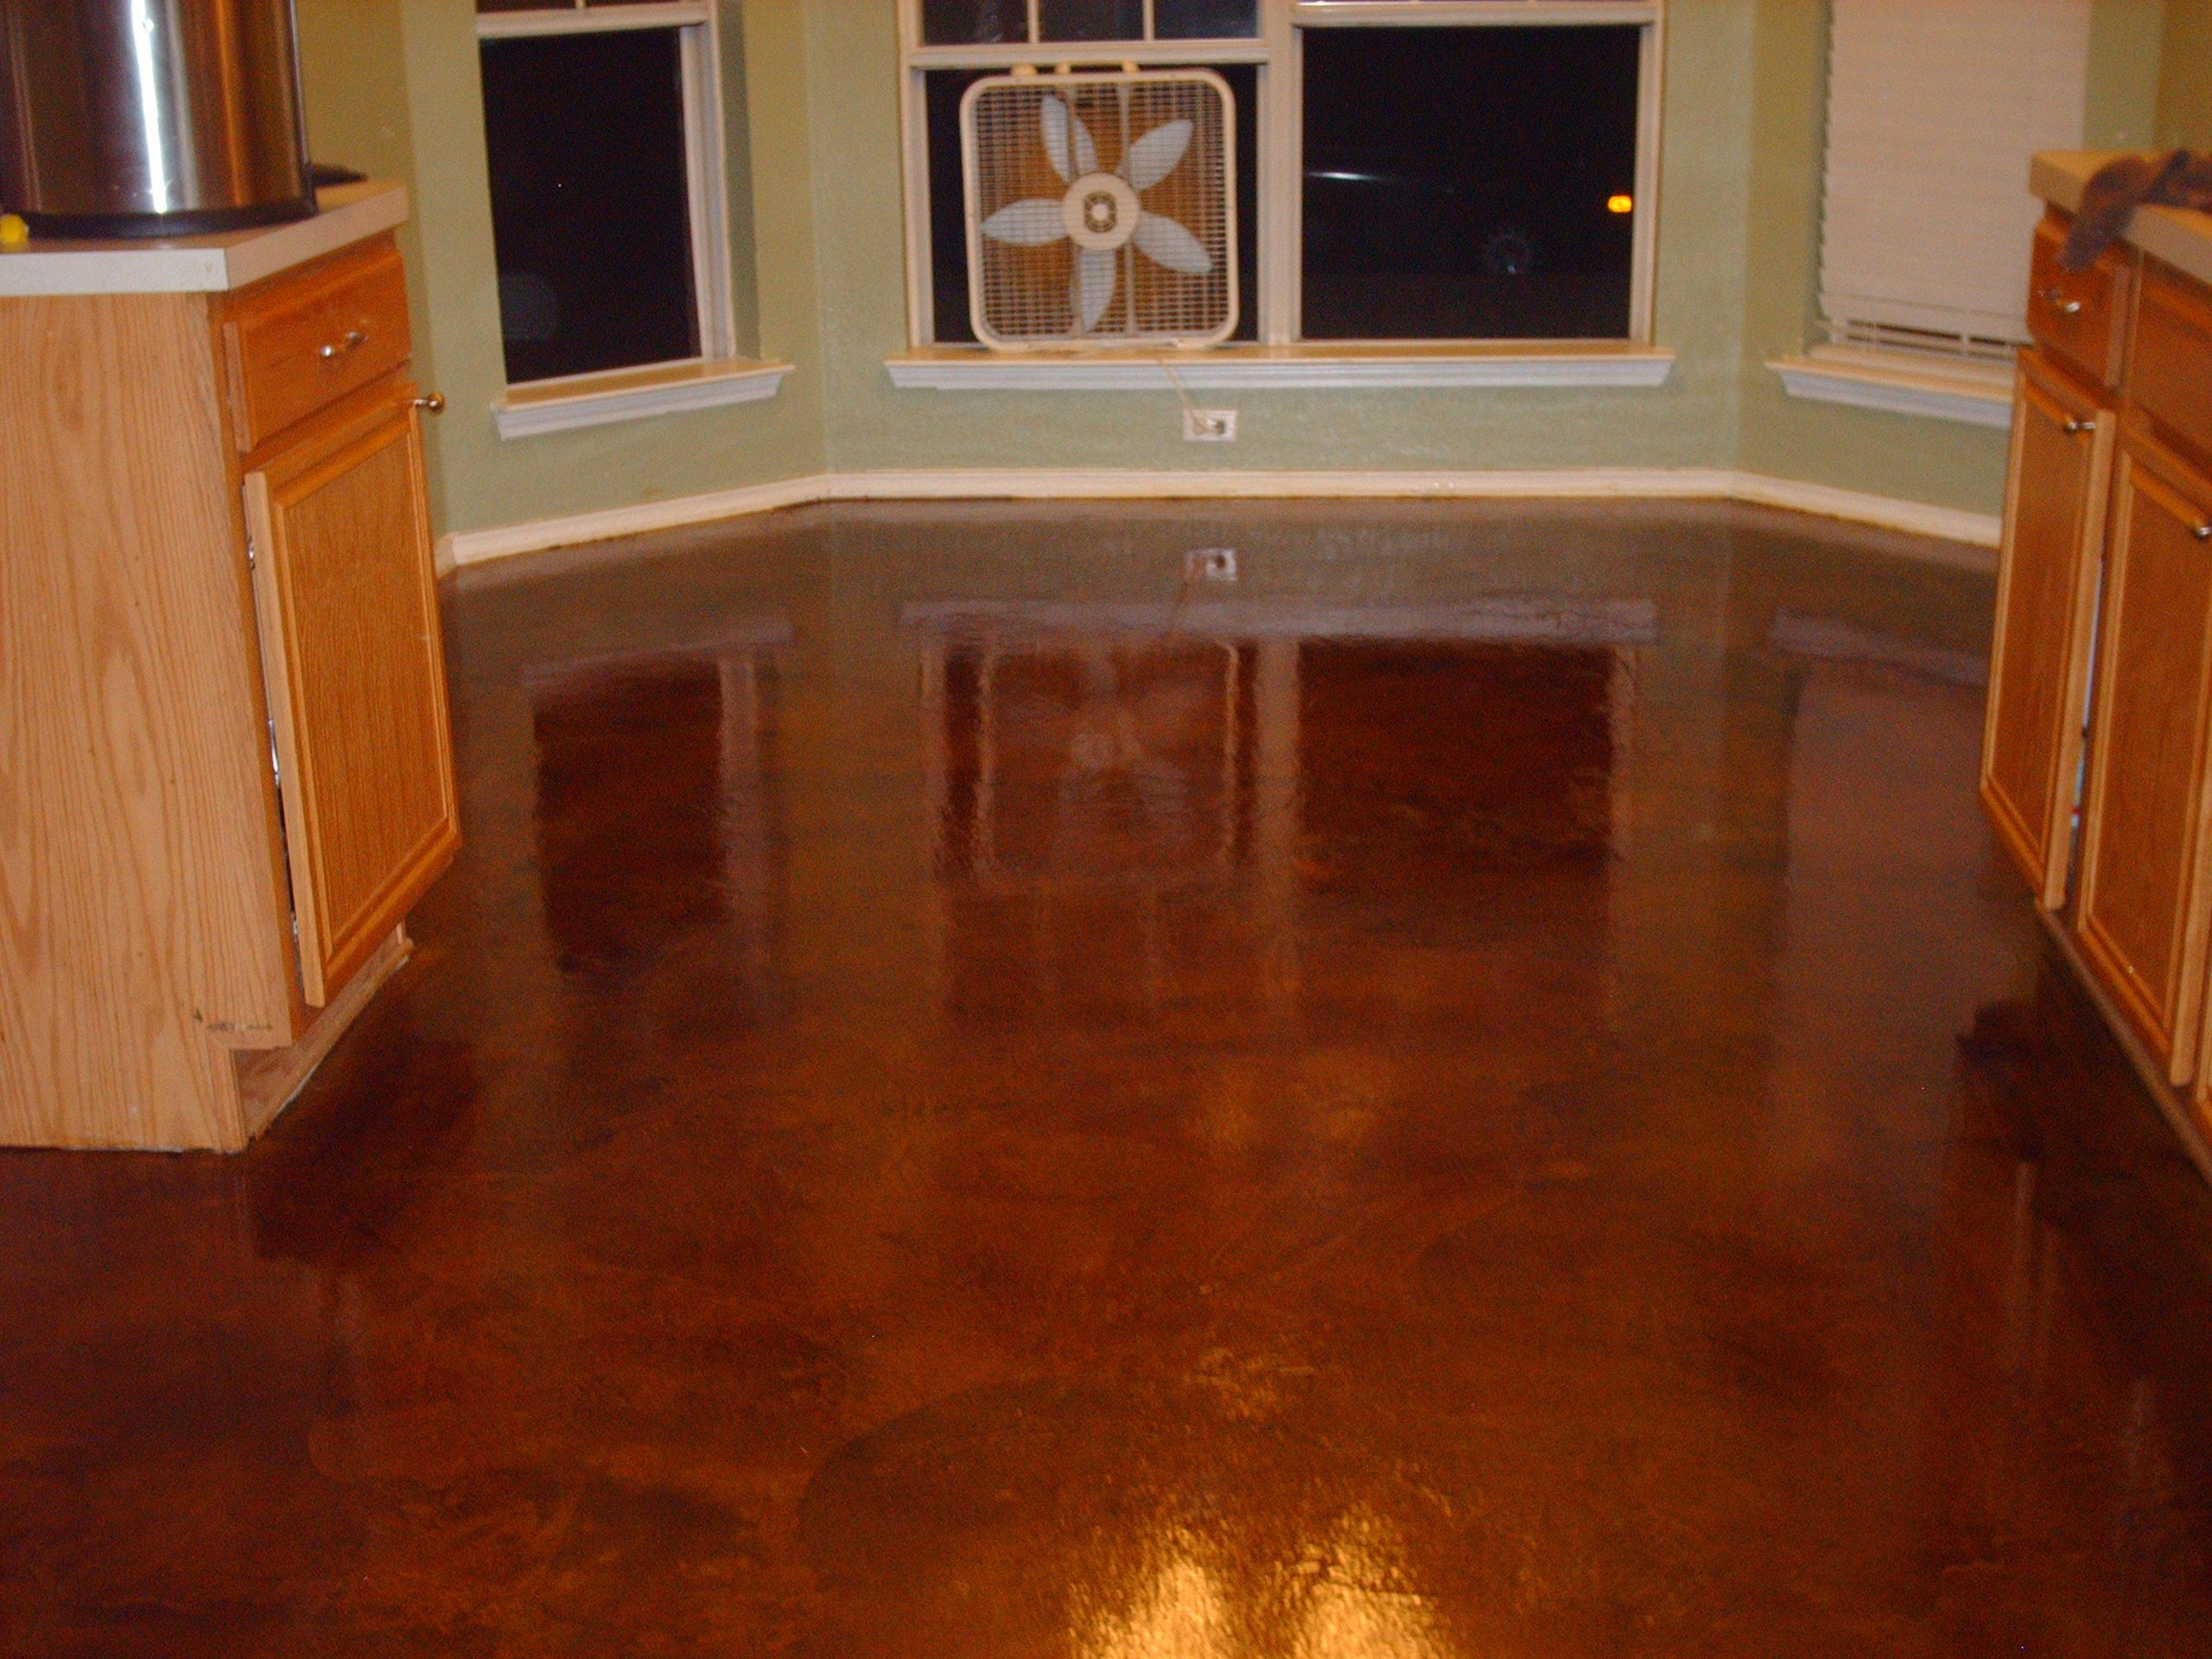 Liquid Hardwood Floor Refinishing Products Of Concrete Stain Cola High Gloss Industrial Sealer From Regarding Concrete Stain Cola High Gloss Industrial Sealer From Makeuglybeautiful Com Stained Concrete